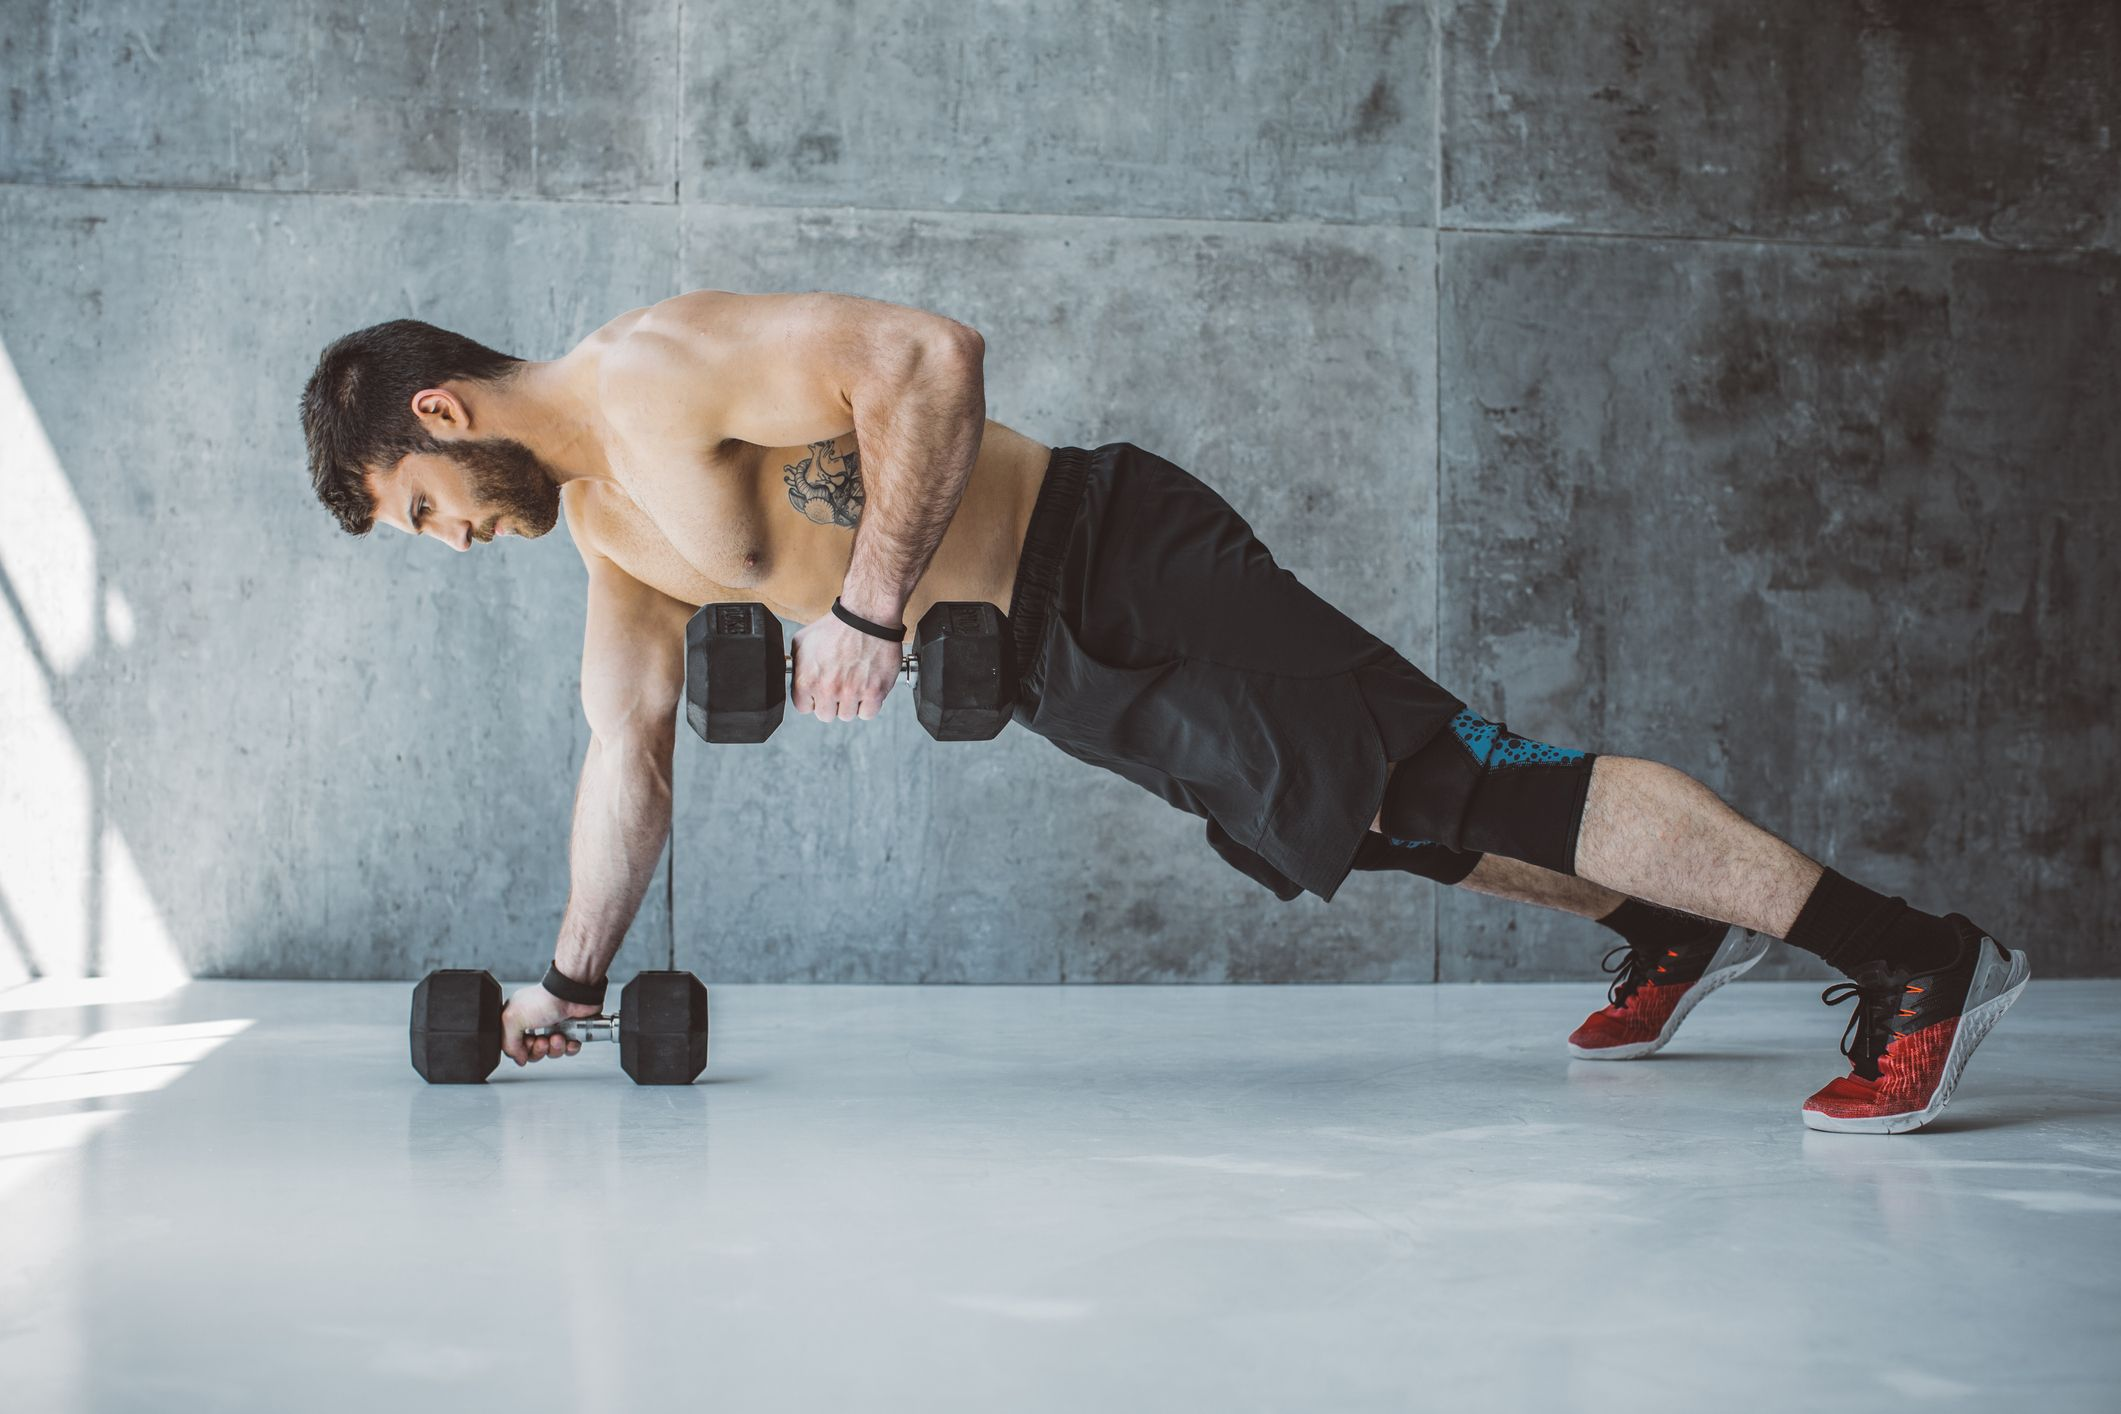 Get Shredded With This 30-Minute Countdown Workout